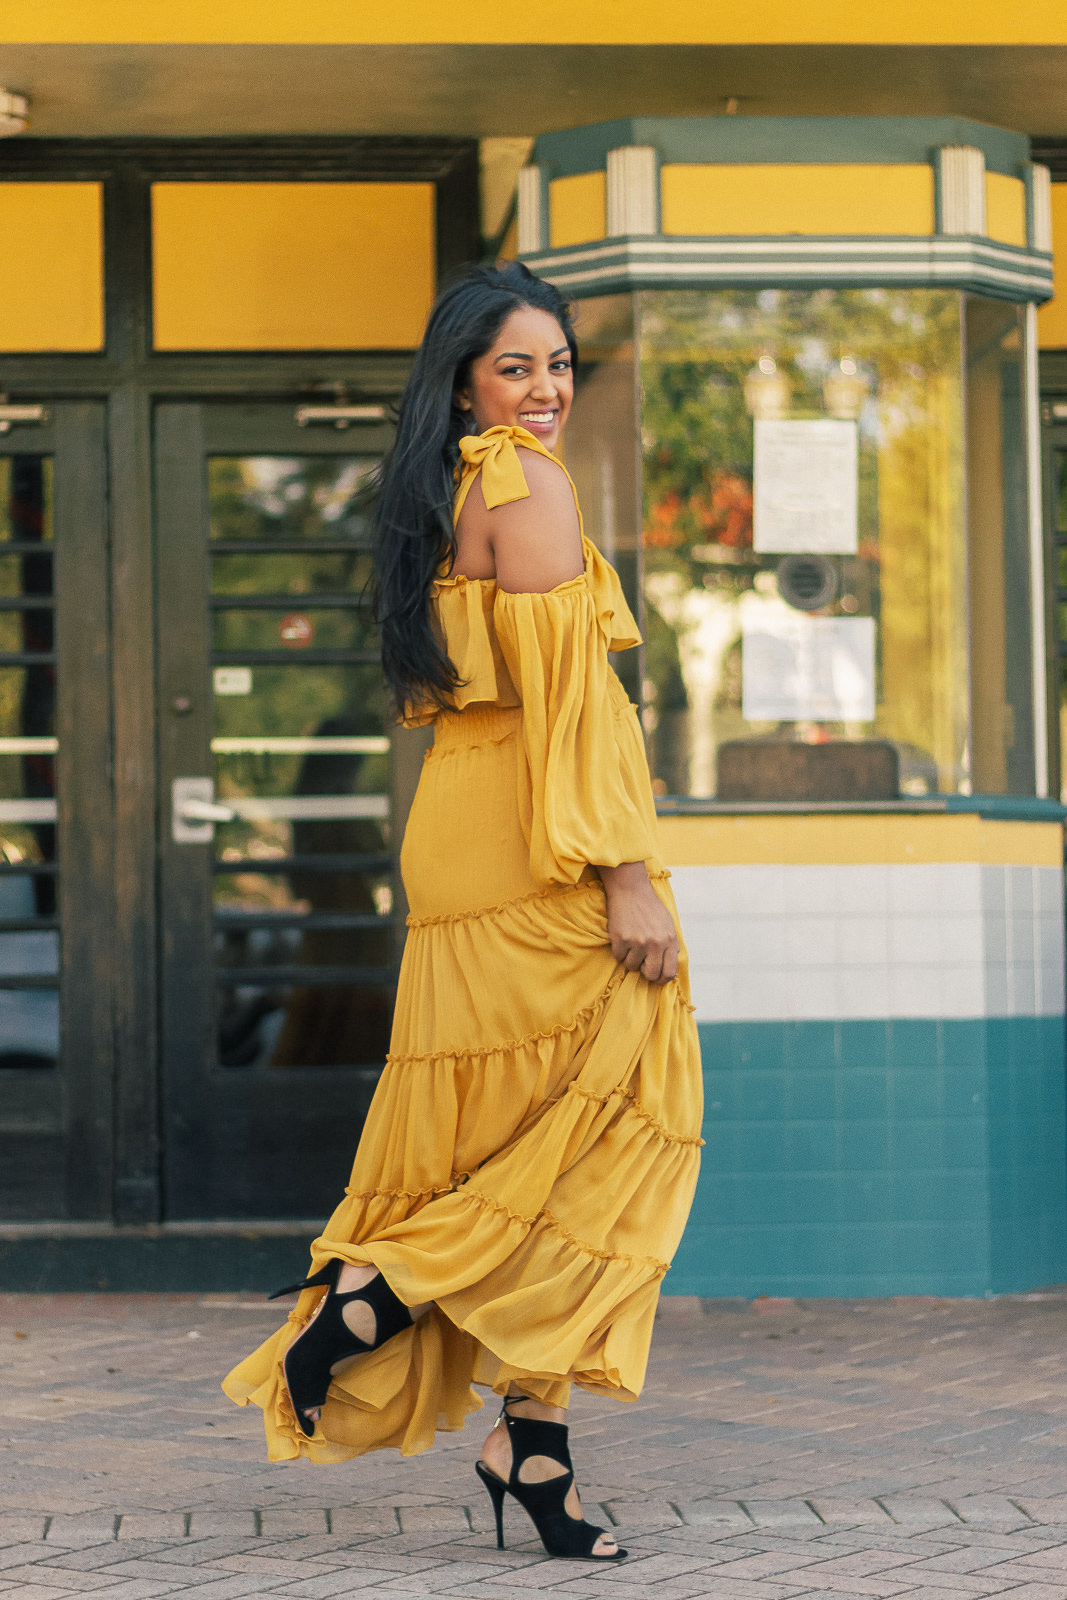 anthropologie-yellow-dress